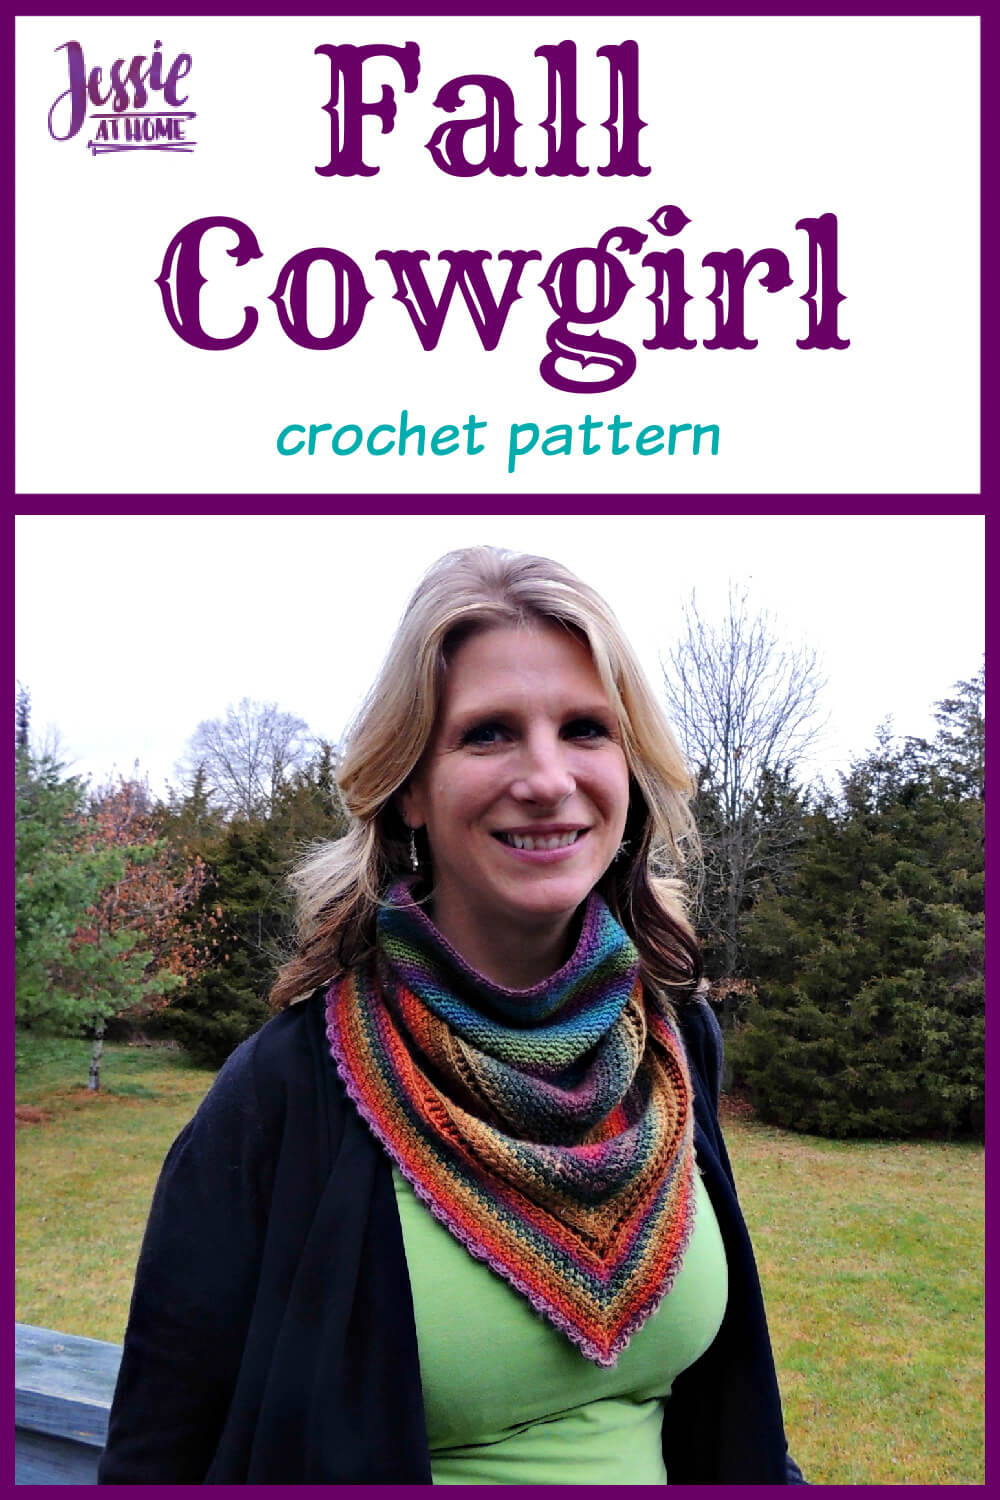 Fall Cowgirl crochet pattern by Jessie At Home - Pin 1